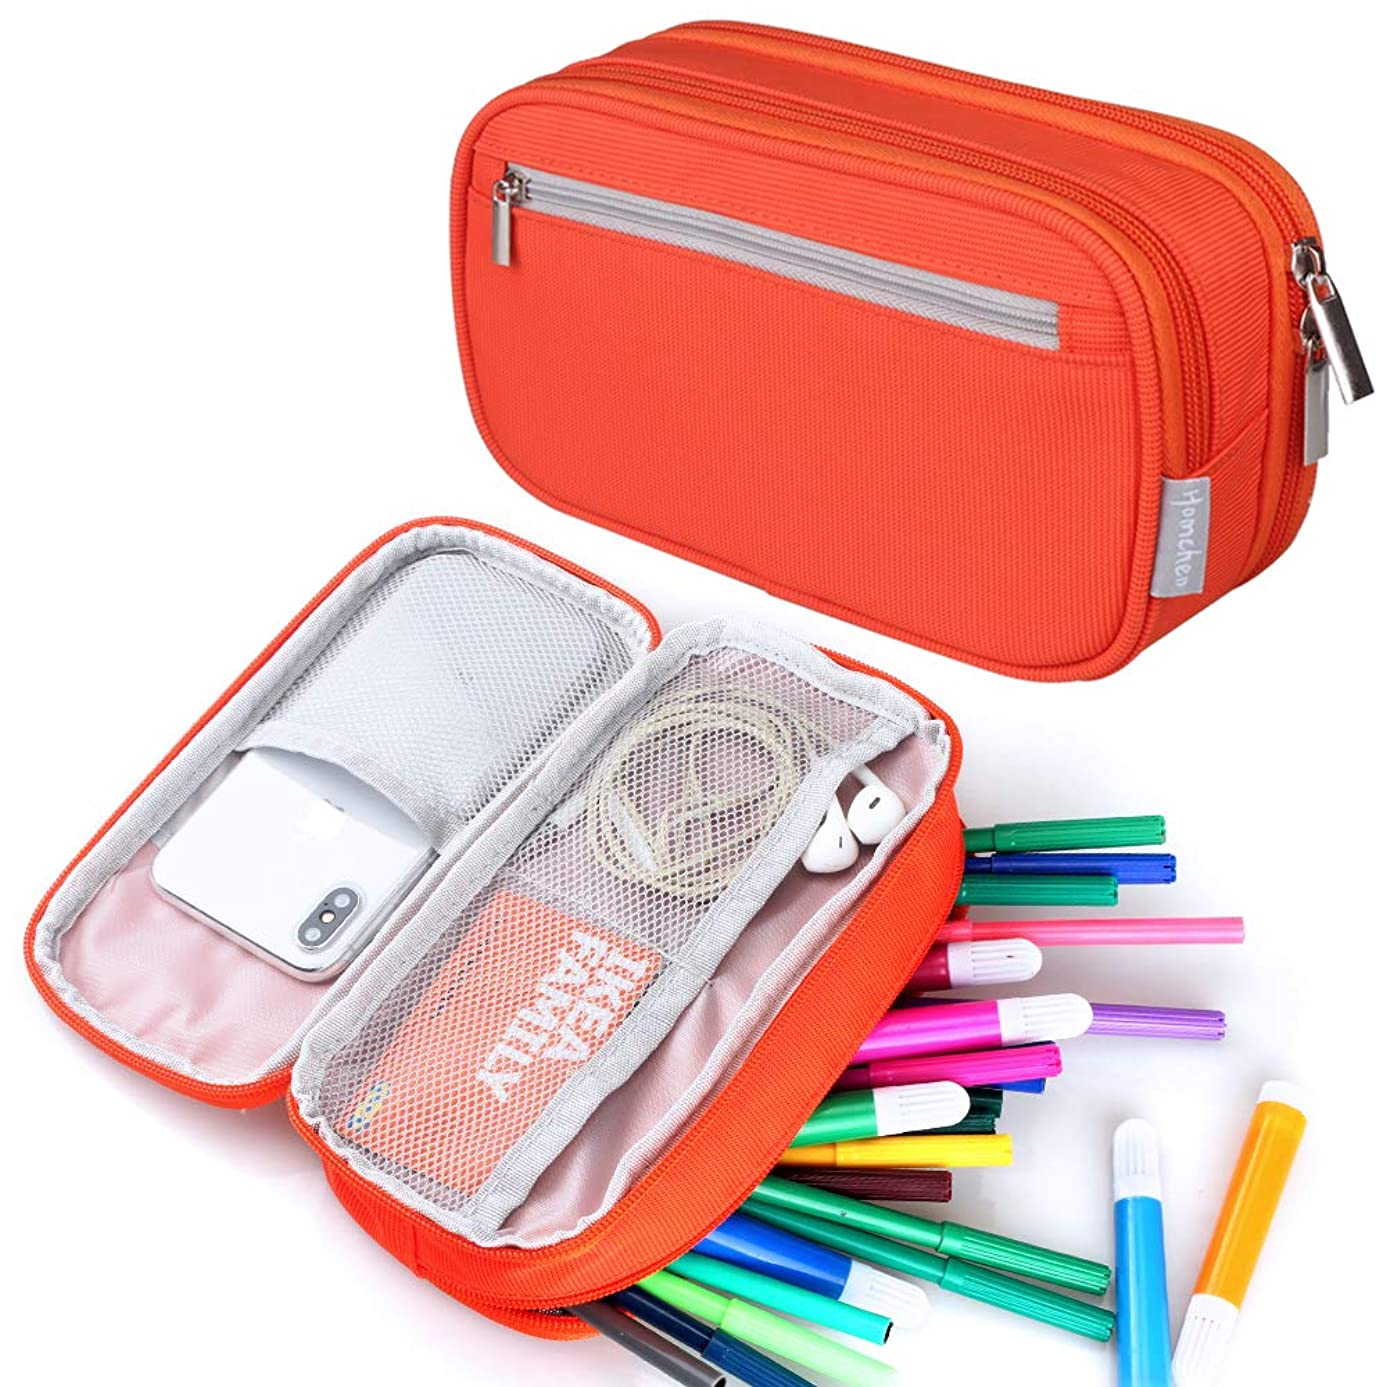 Large Capacity Pencil Case, Travel Make Up Cosmetic Bag Pouch Pencil Pen Bag Pouch Office Cable Bag with Multi Compartments for Women Girls School College Student Adults, Orange